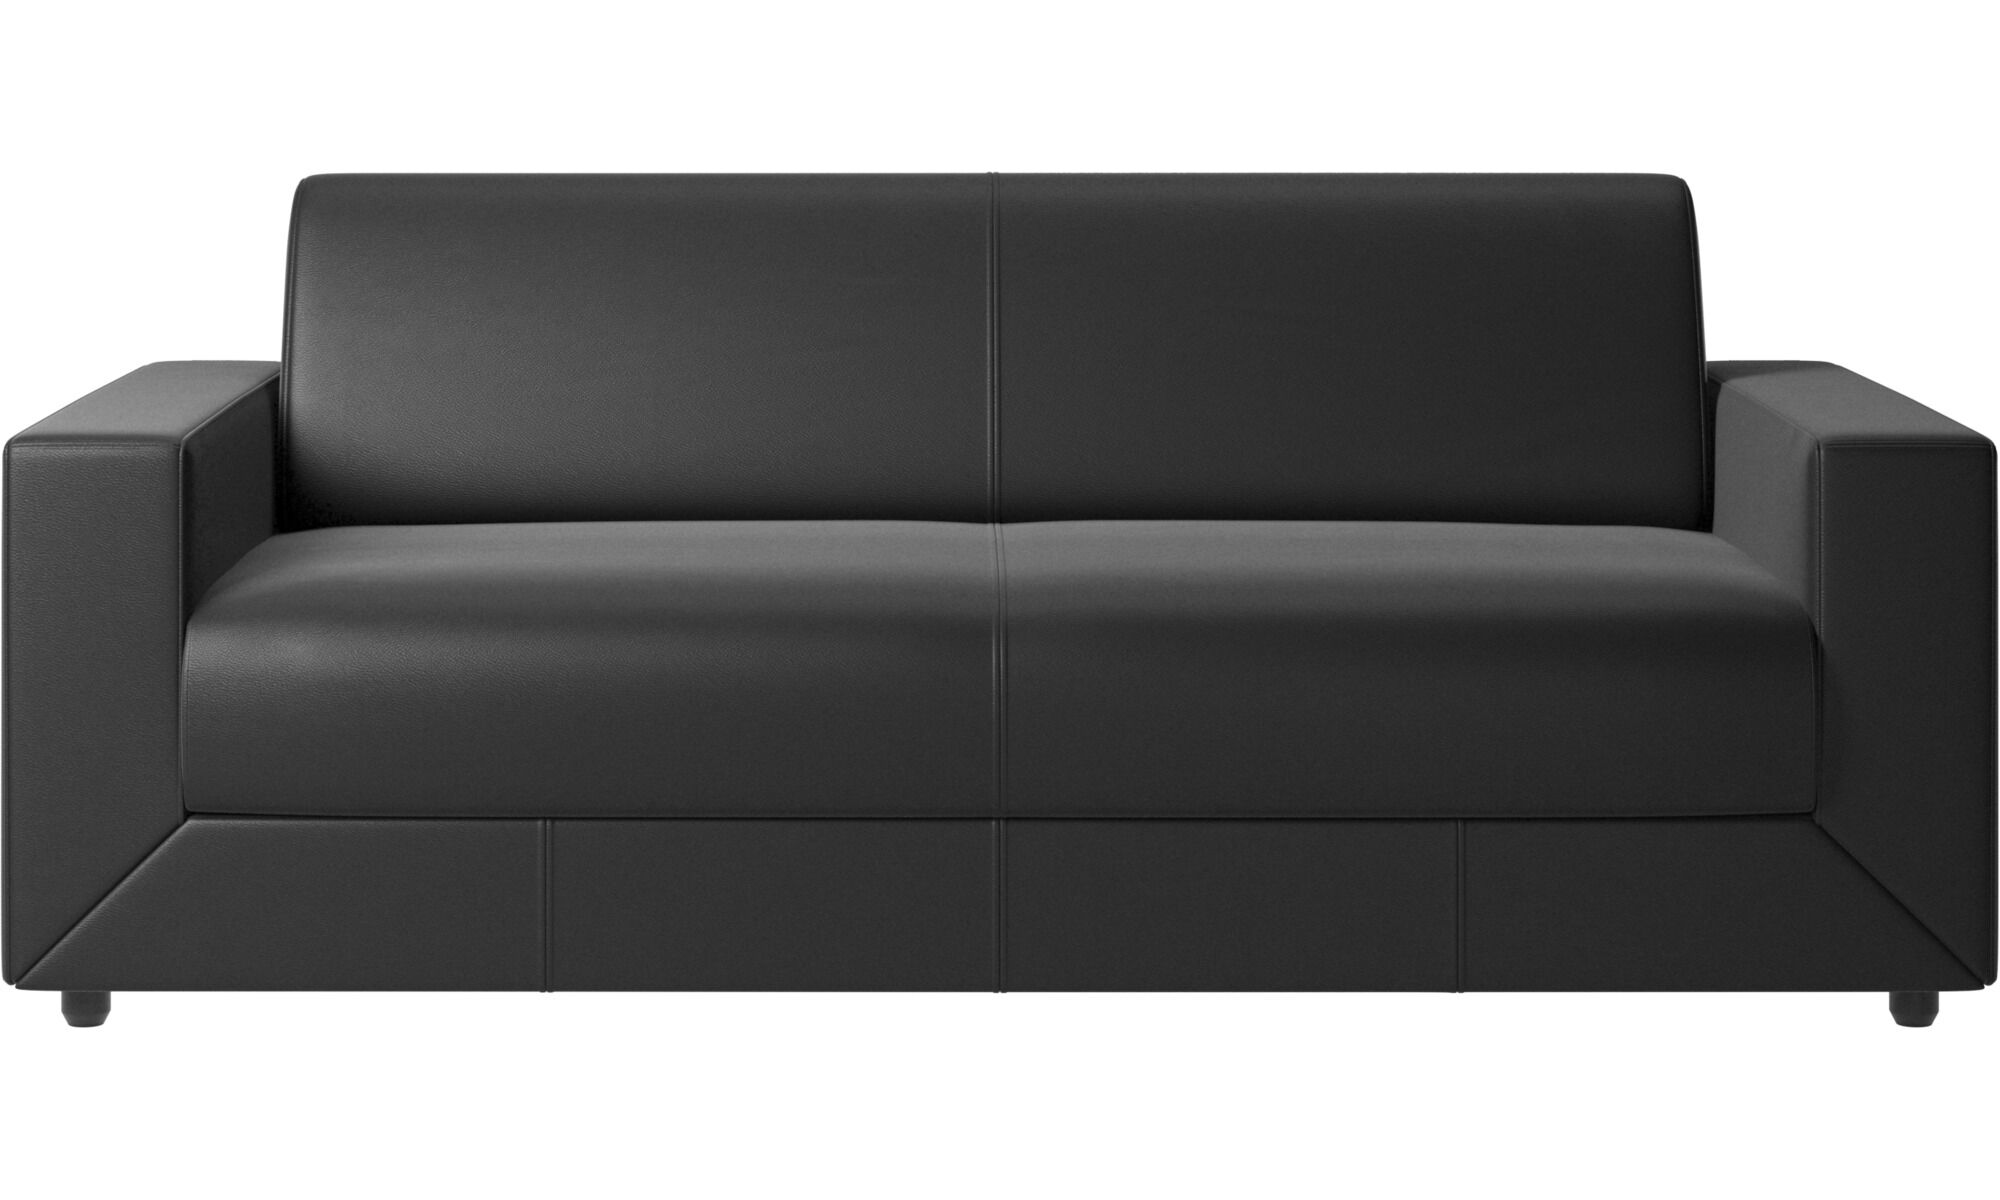 design furniture in time for christmas stockholm sofa bed black leather